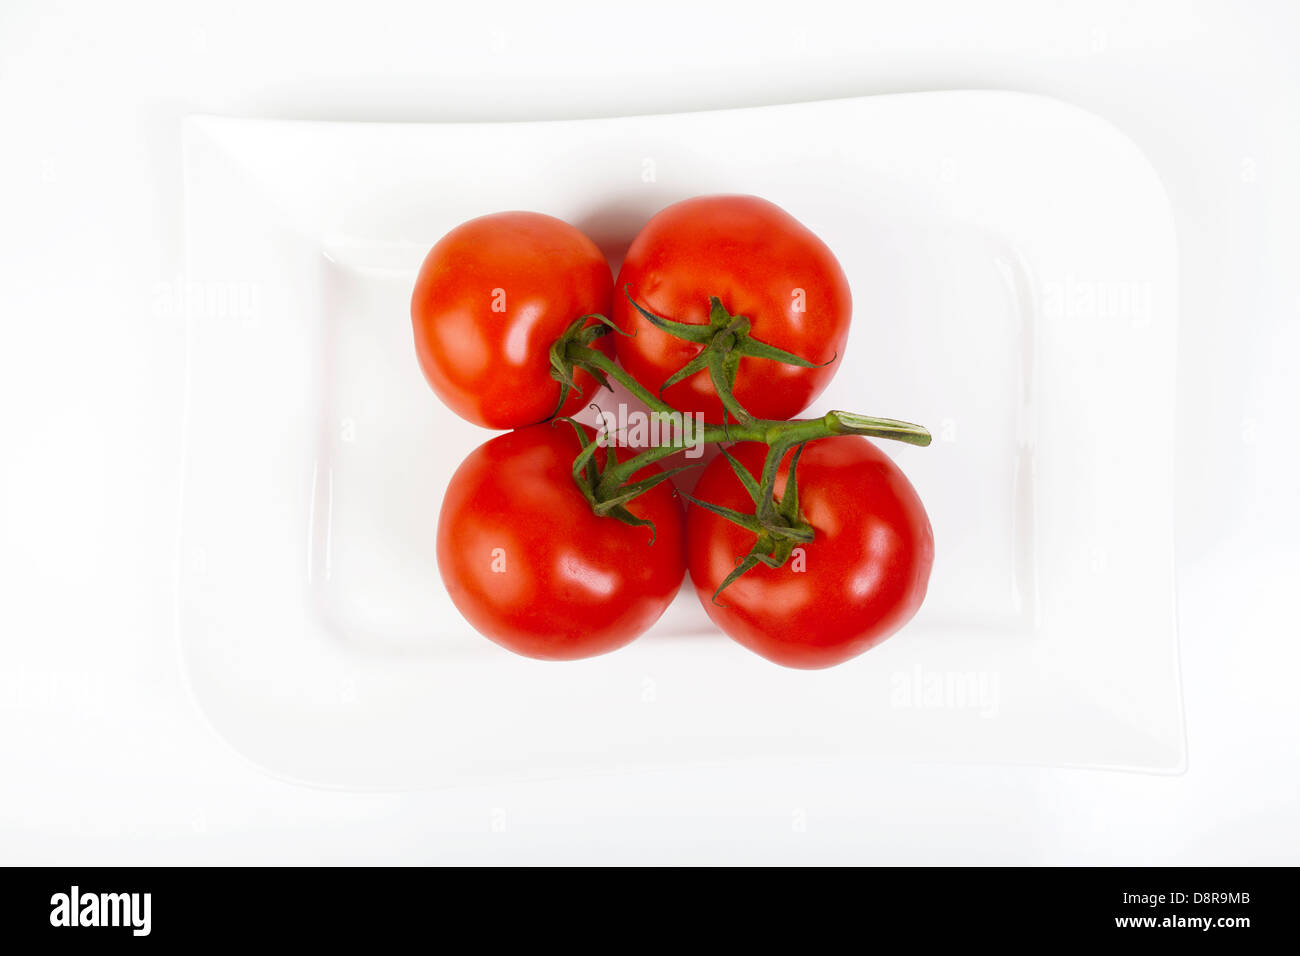 Four whole trusses of tomatoes on a white porcelain plate - Stock Image